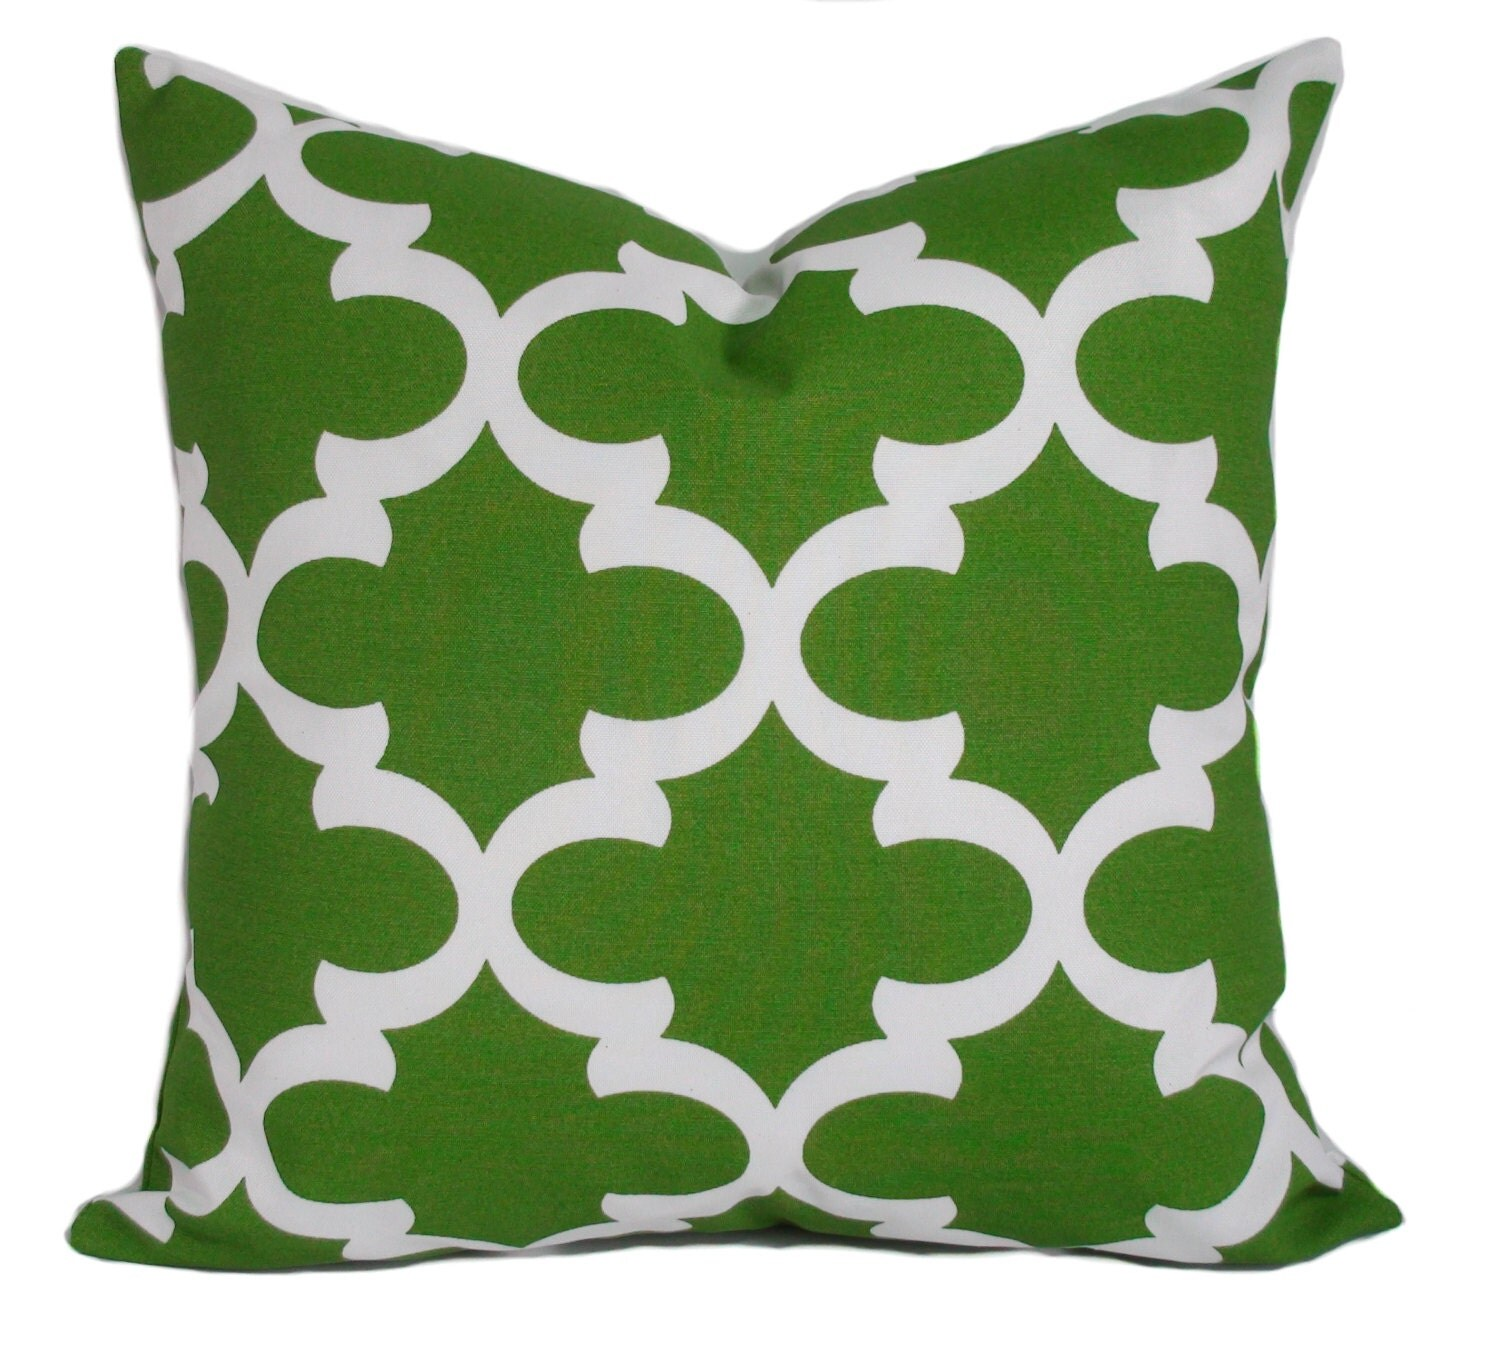 Outdoor pillow cover 16x16 Green outdoor pillow Outdoor